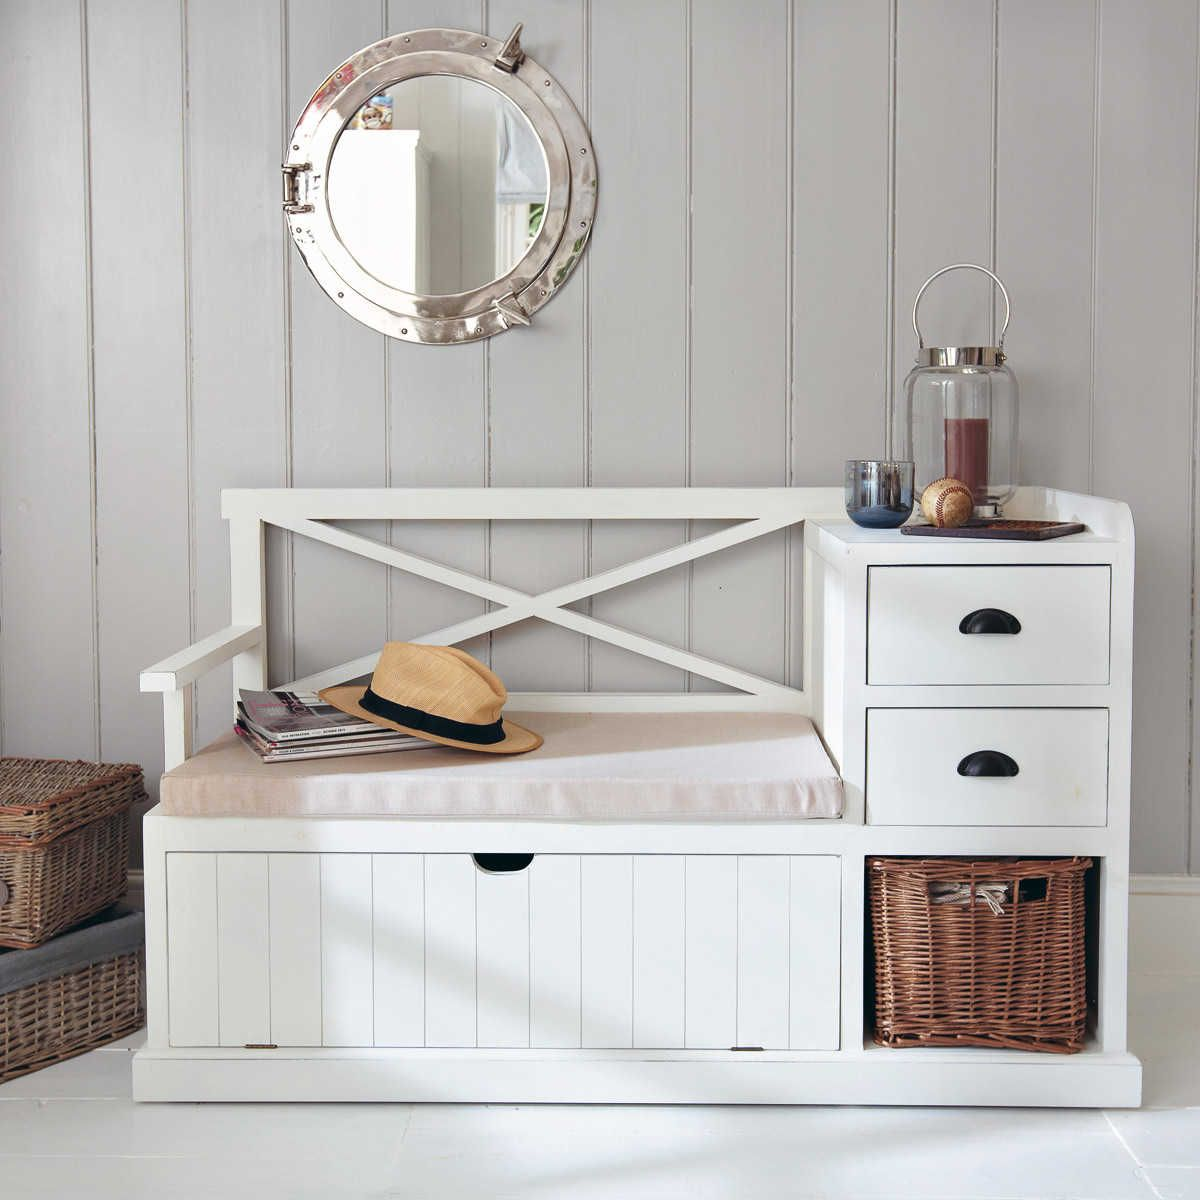 meuble d 39 entr e en bois blanc l 135 cm entr e meubles et bancs. Black Bedroom Furniture Sets. Home Design Ideas